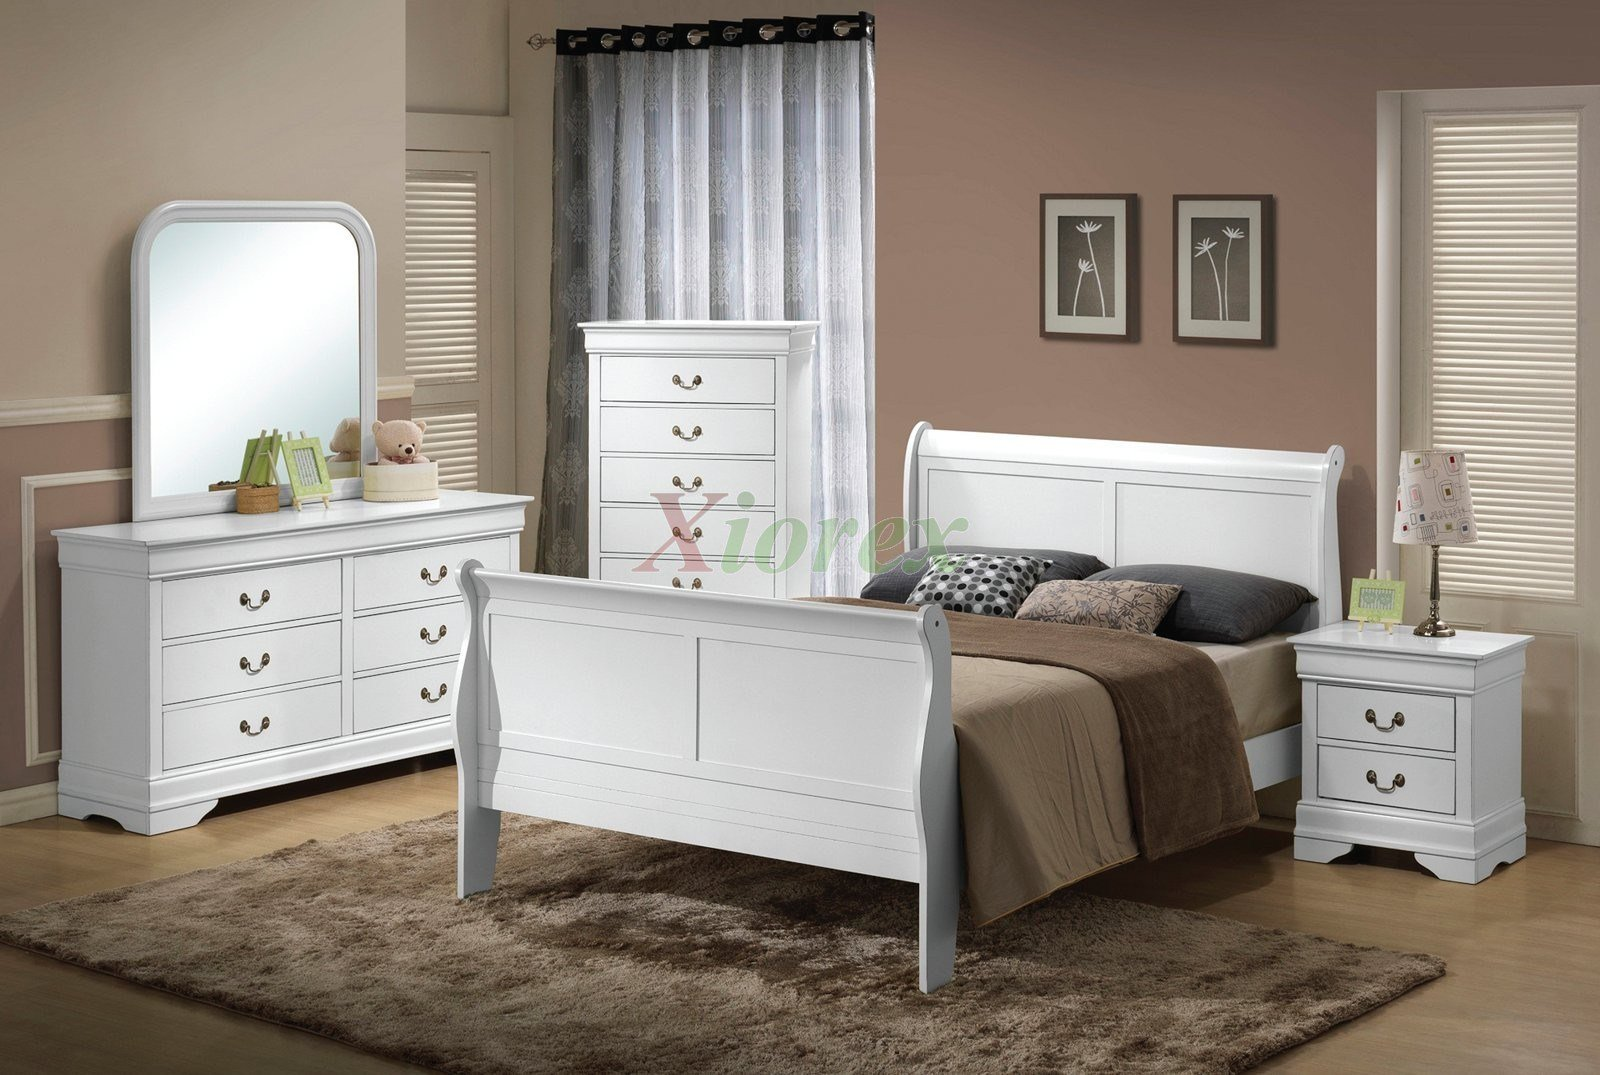 Best Bedroom Furniture White Furniture Home Decor With Pictures